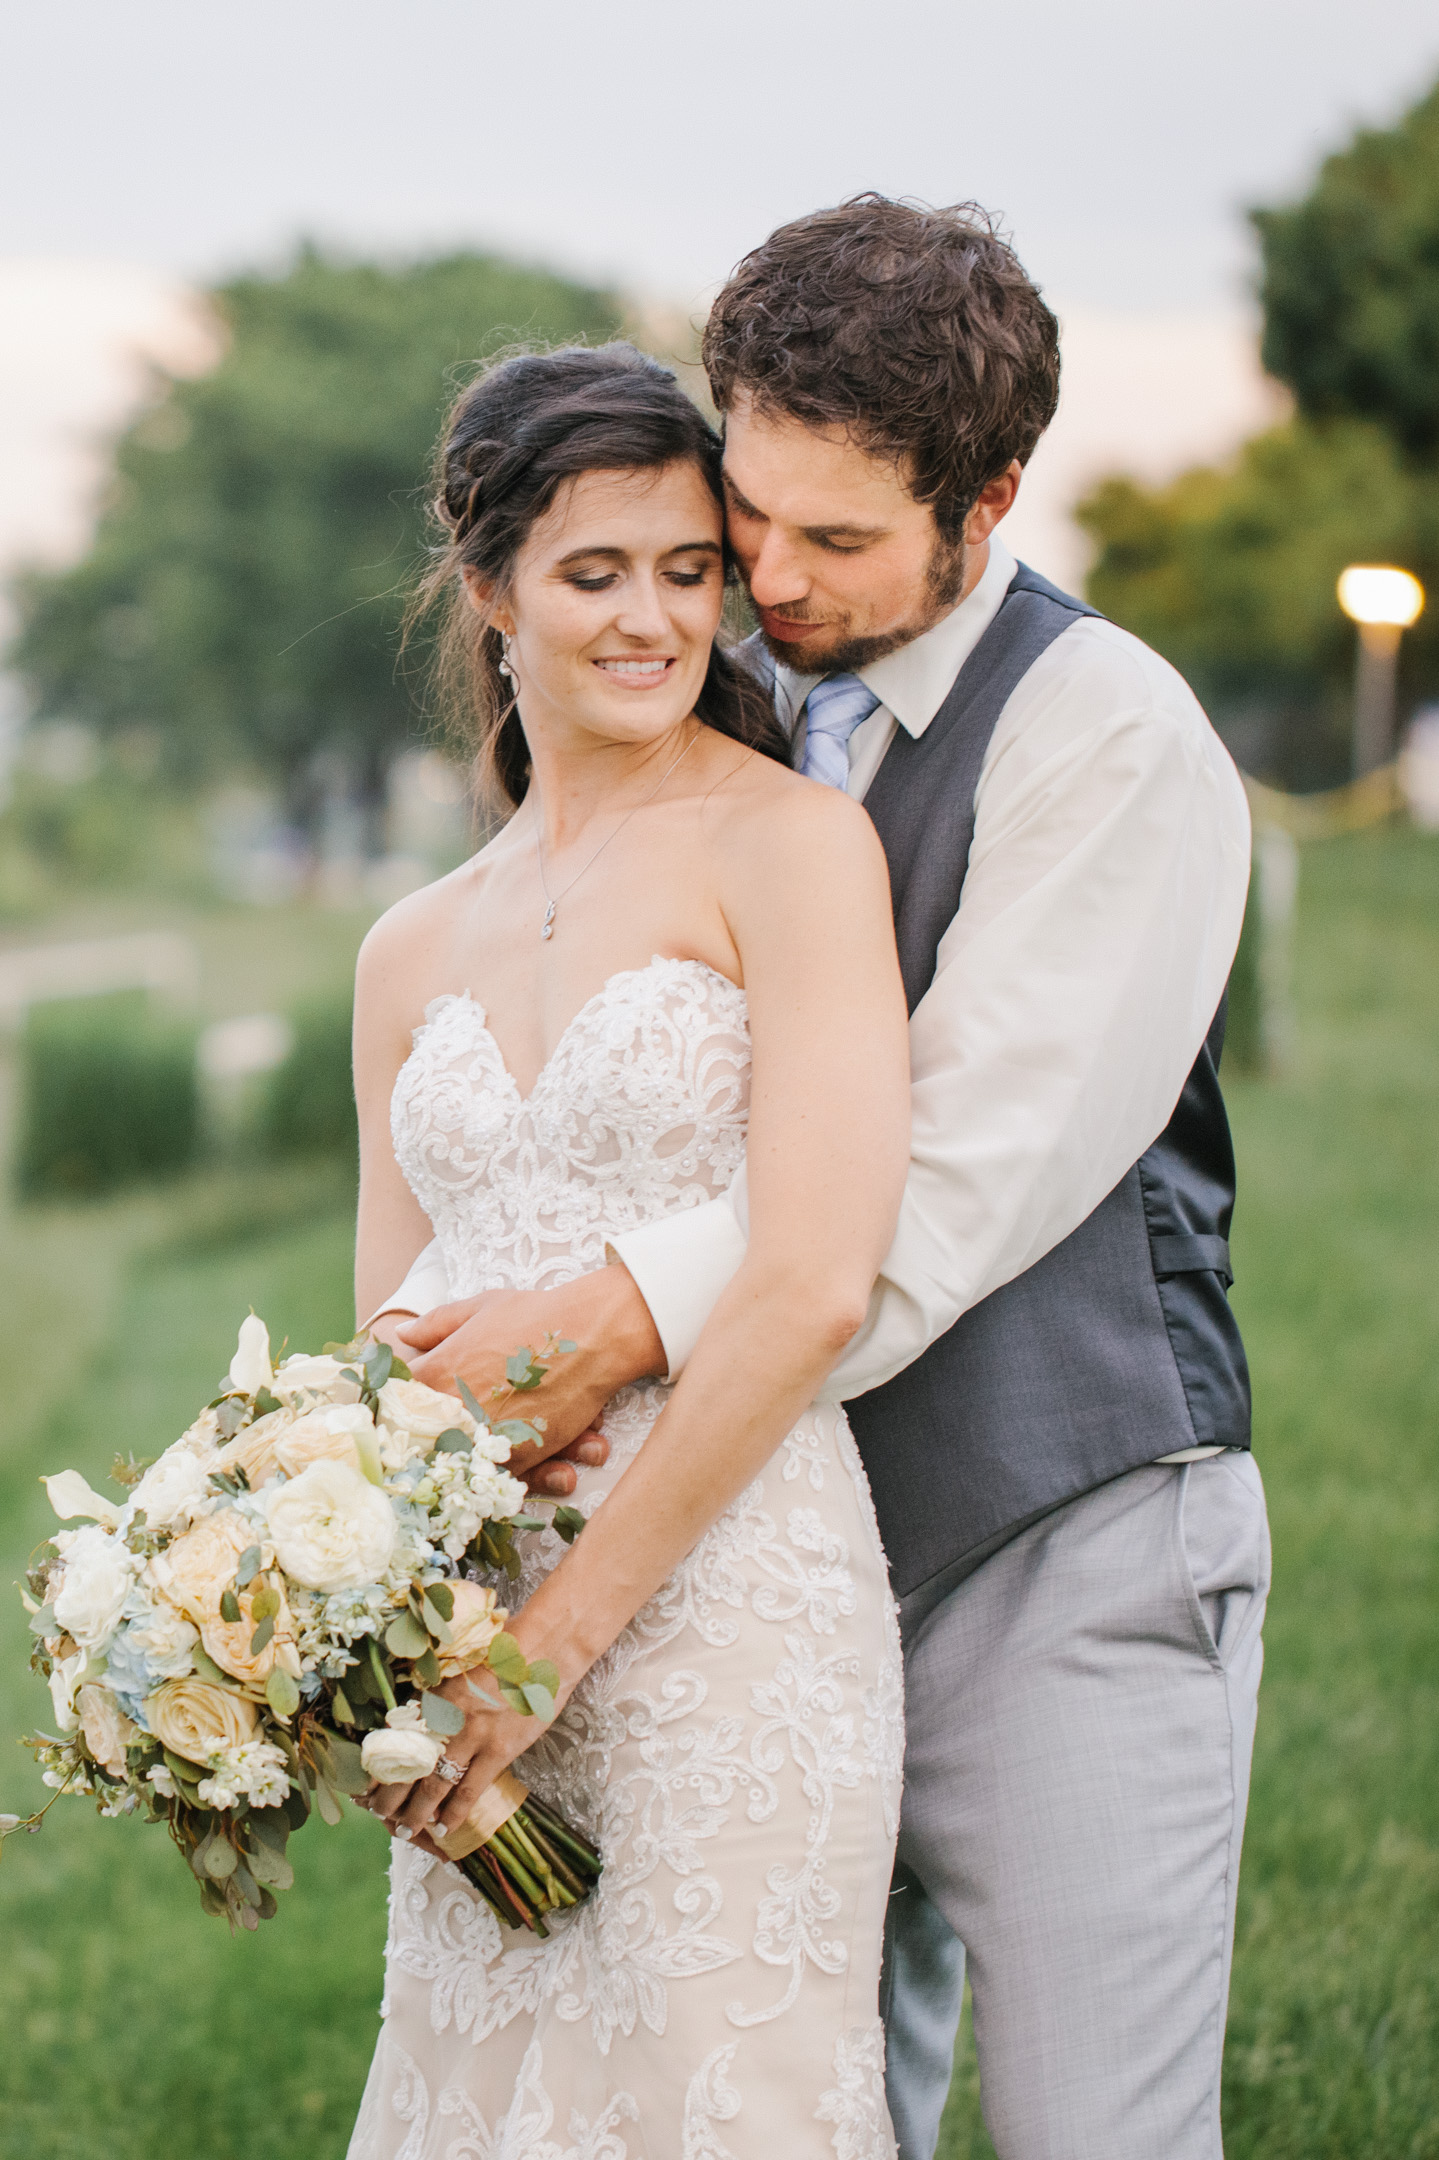 couple hugging in wedding outfits lace dress and holding flowers smiling des moines iowa parks